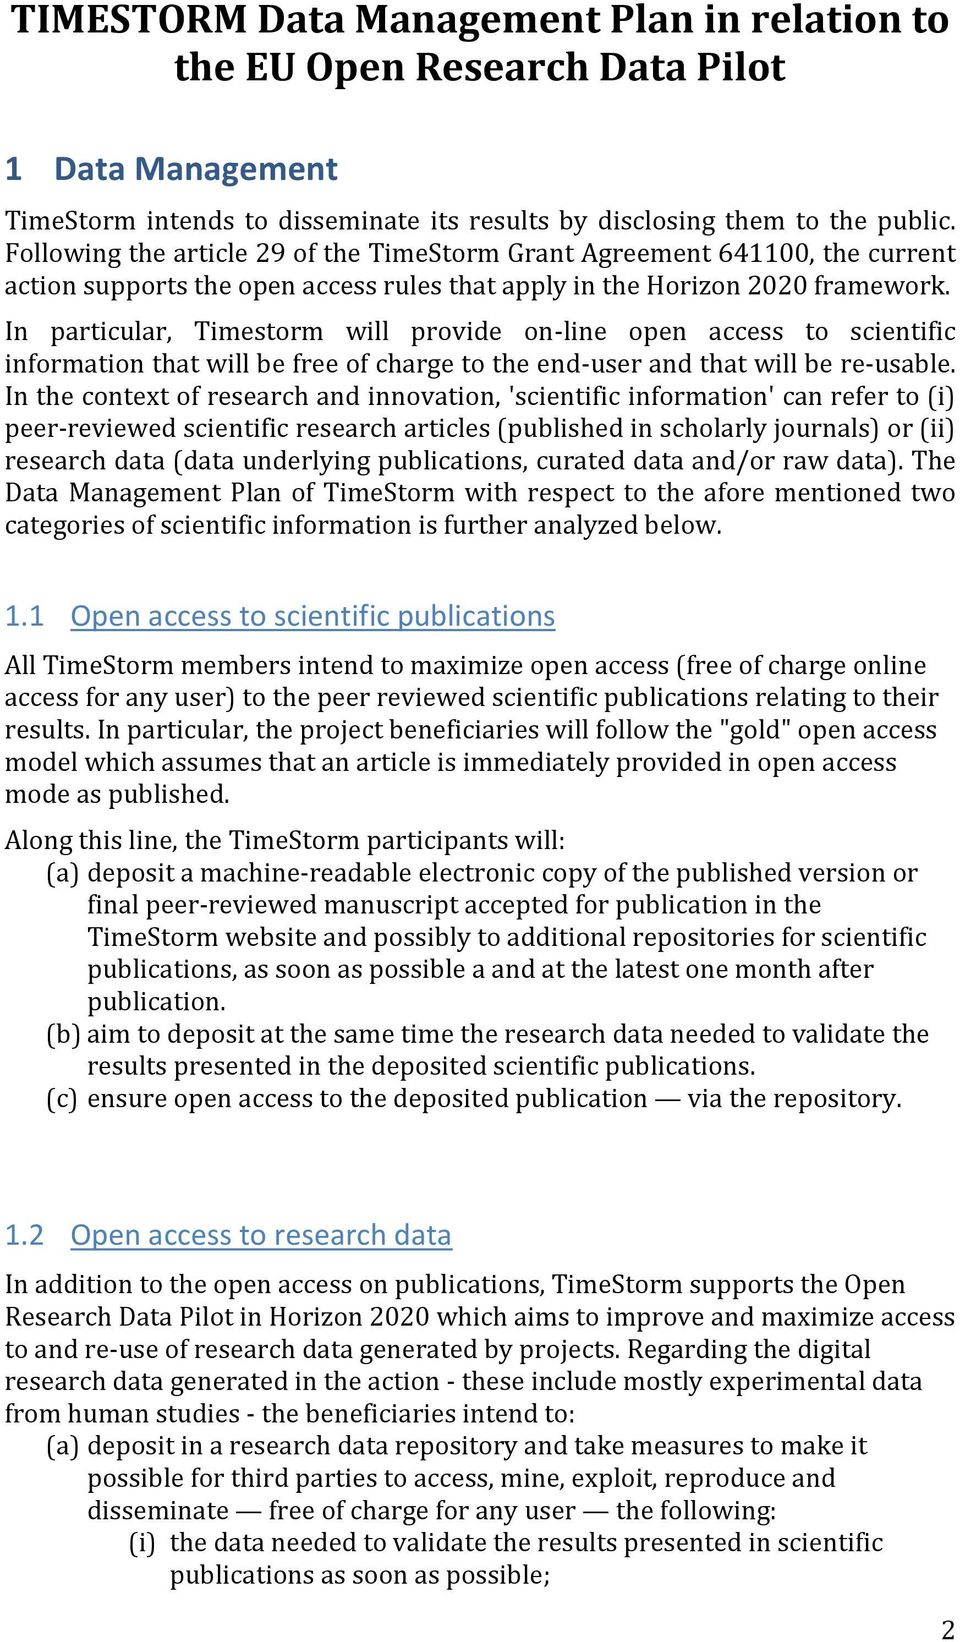 In particular, Timestorm will provide on-line open access to scientific information that will be free of charge to the end-user and that will be re-usable.